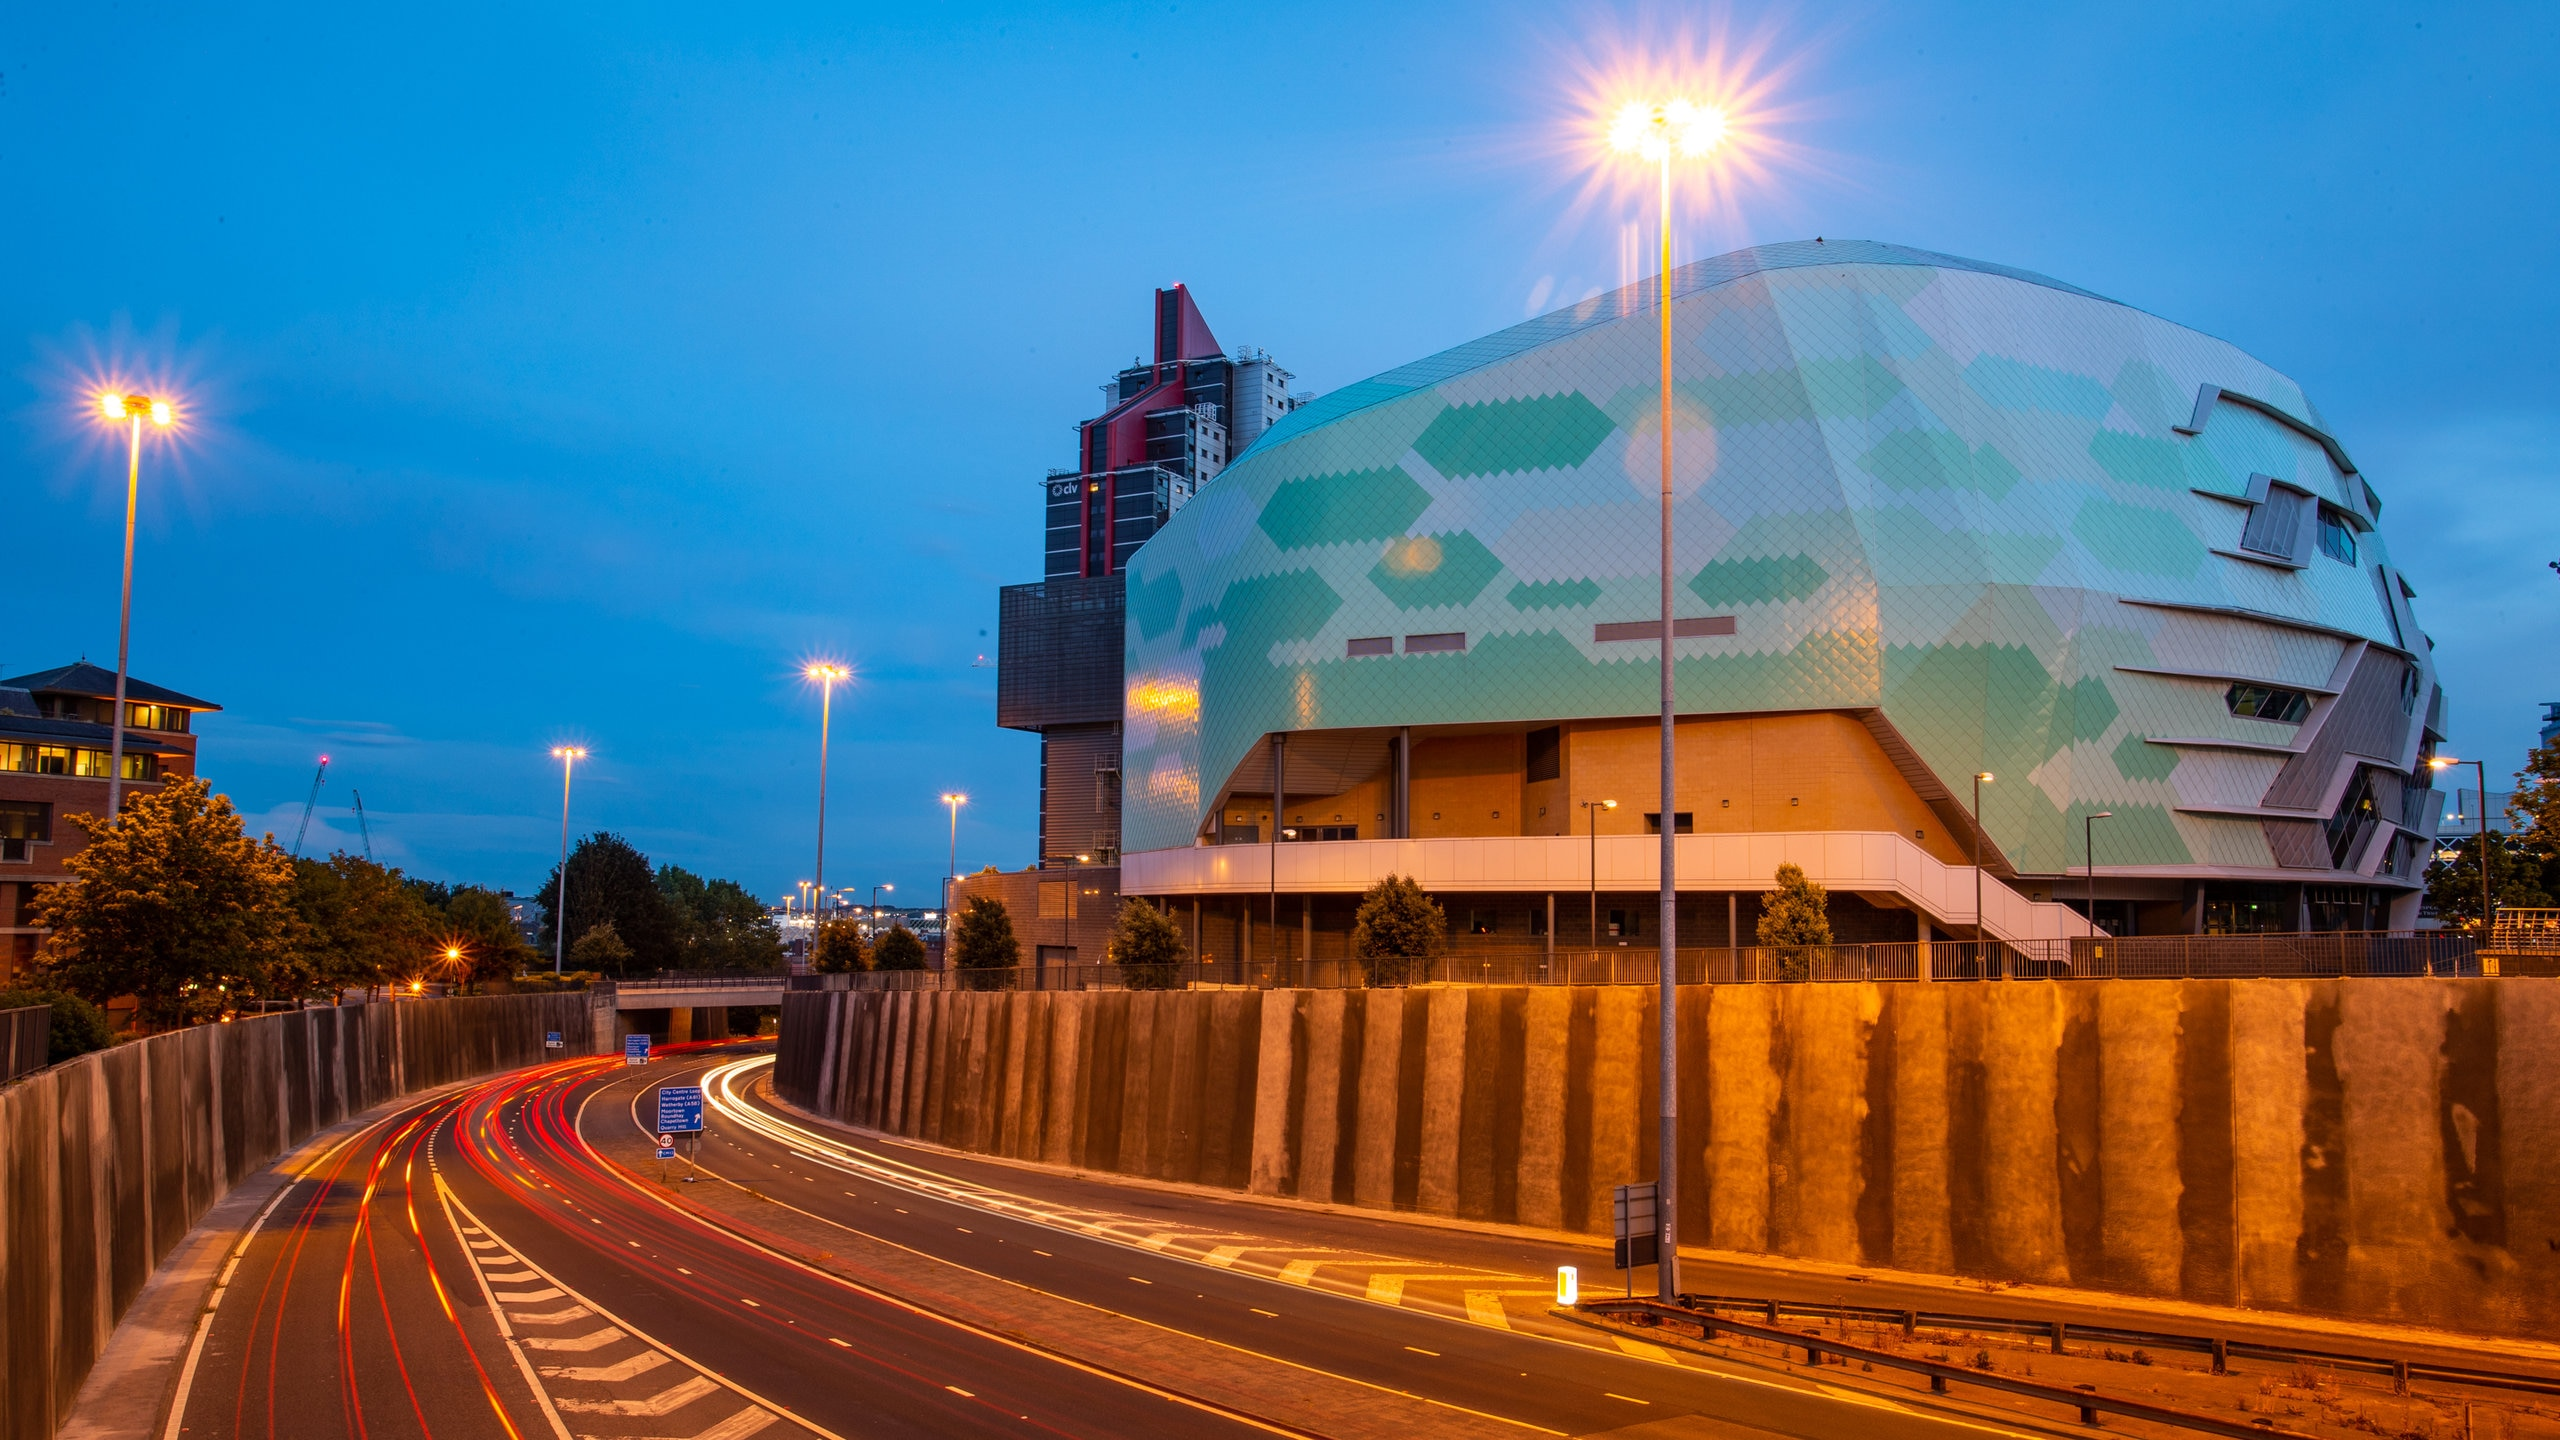 Its honeycombed exterior glowing like a beacon at night, Leeds' modern music venue draws crowds nightly to its shows featuring local and international stars.